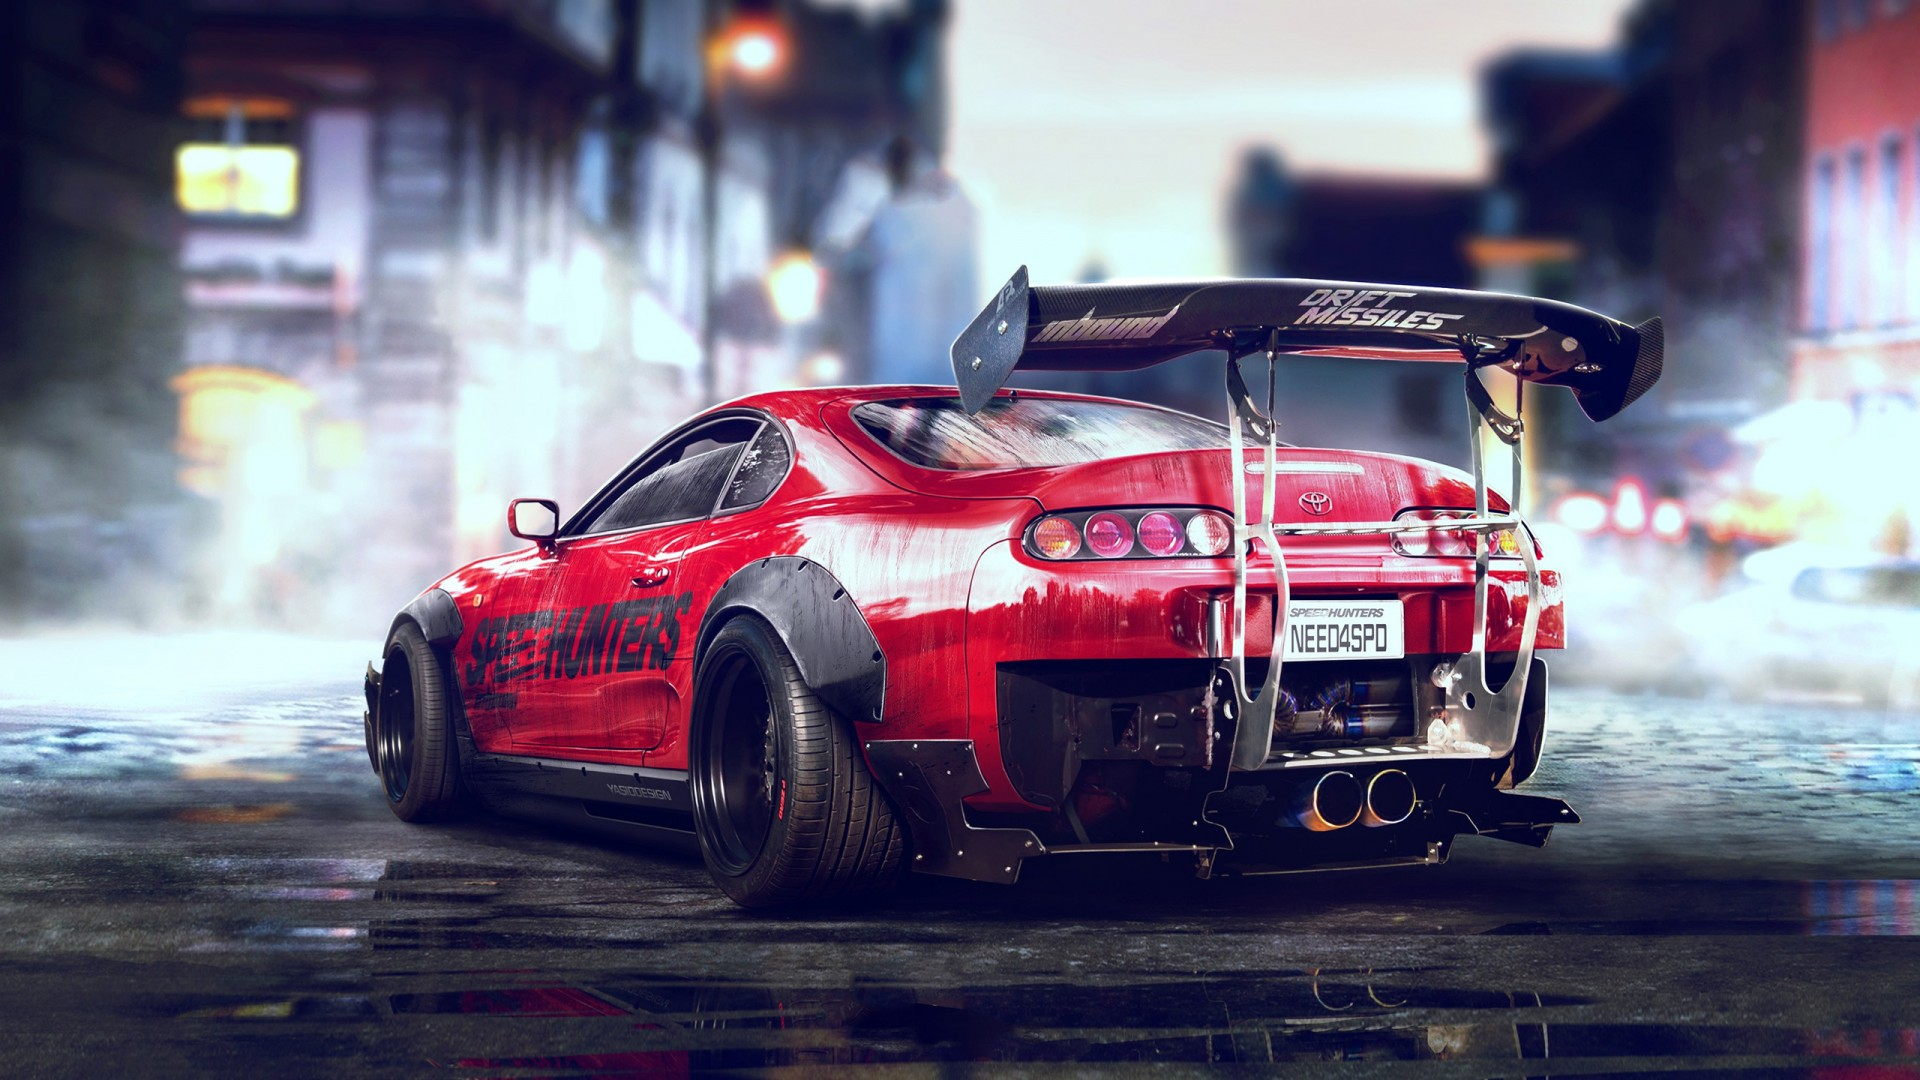 Cute Anime 3d Wallpaper Toyota Supra Sports Car Wallpapers Hd Wallpapers Id 20356